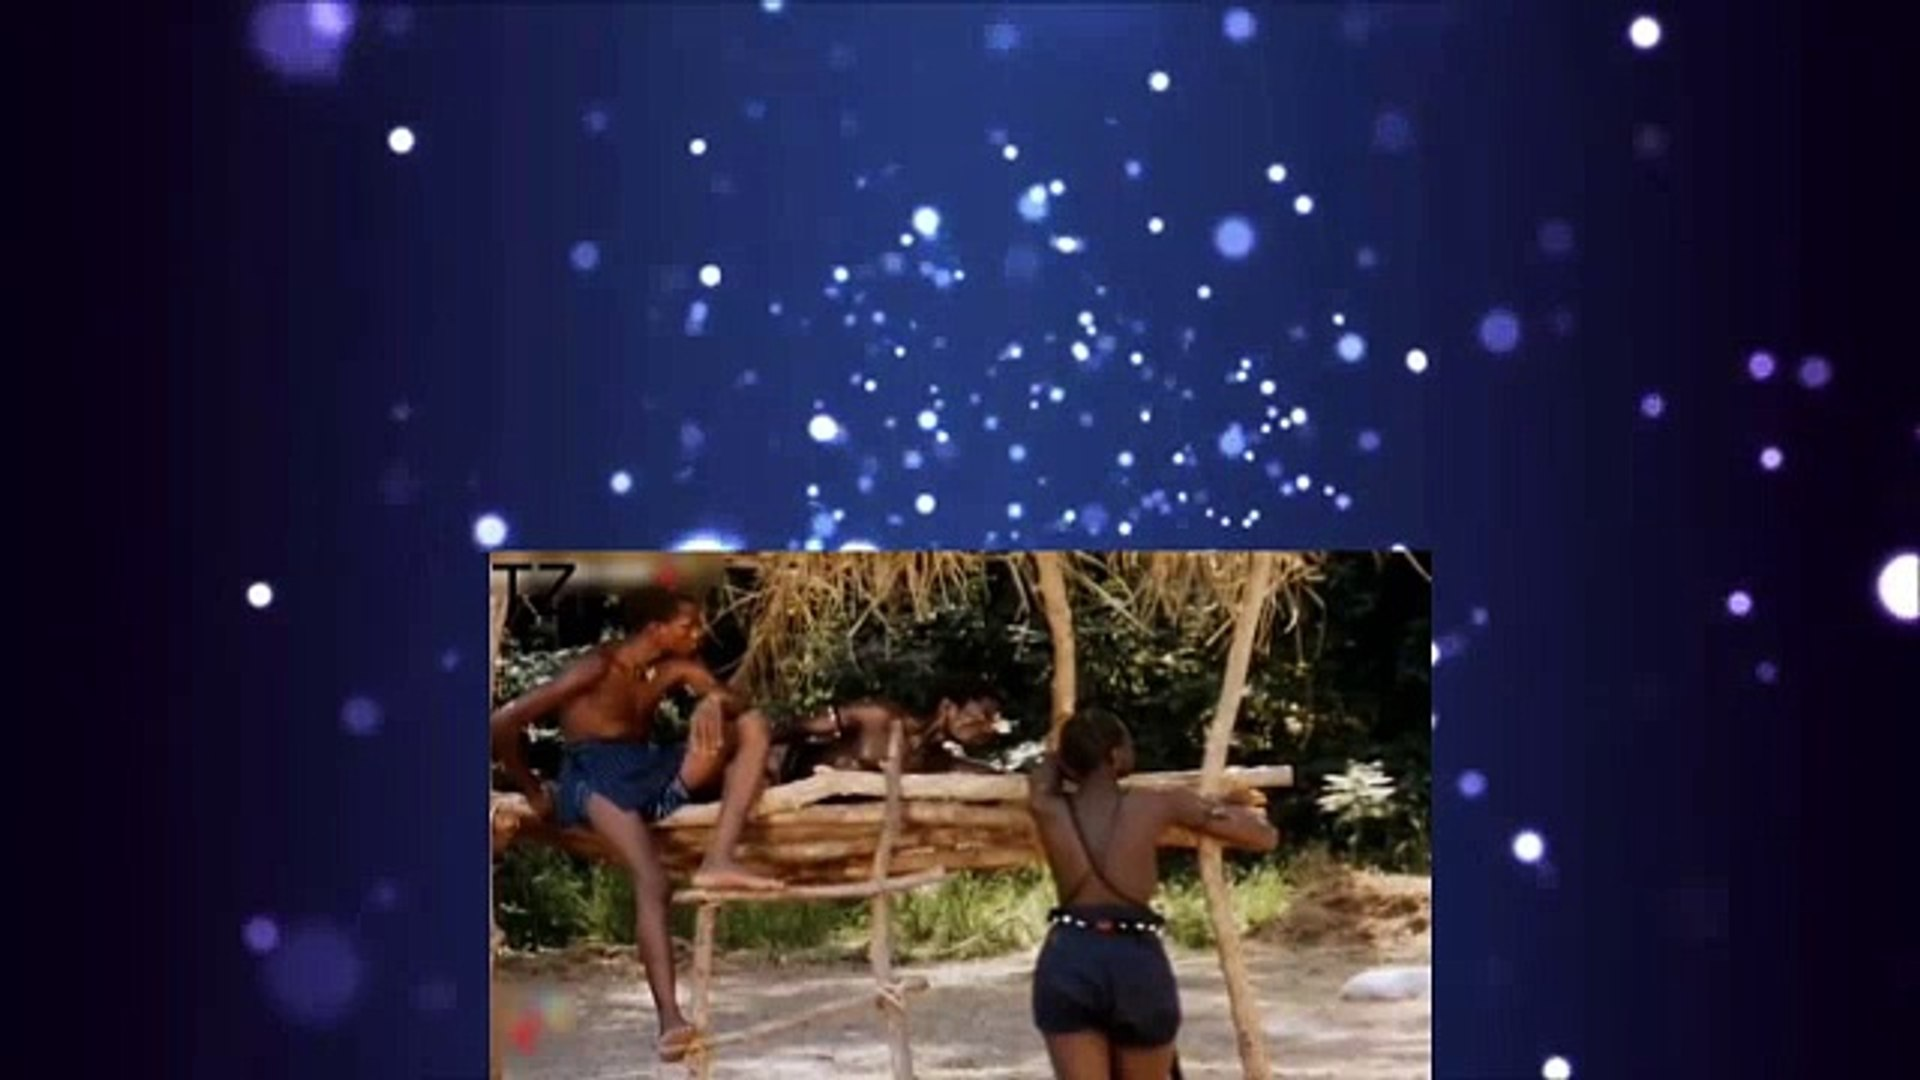 Documentary of African tribe living - Primitive Tribes Rituals and Ceremonies